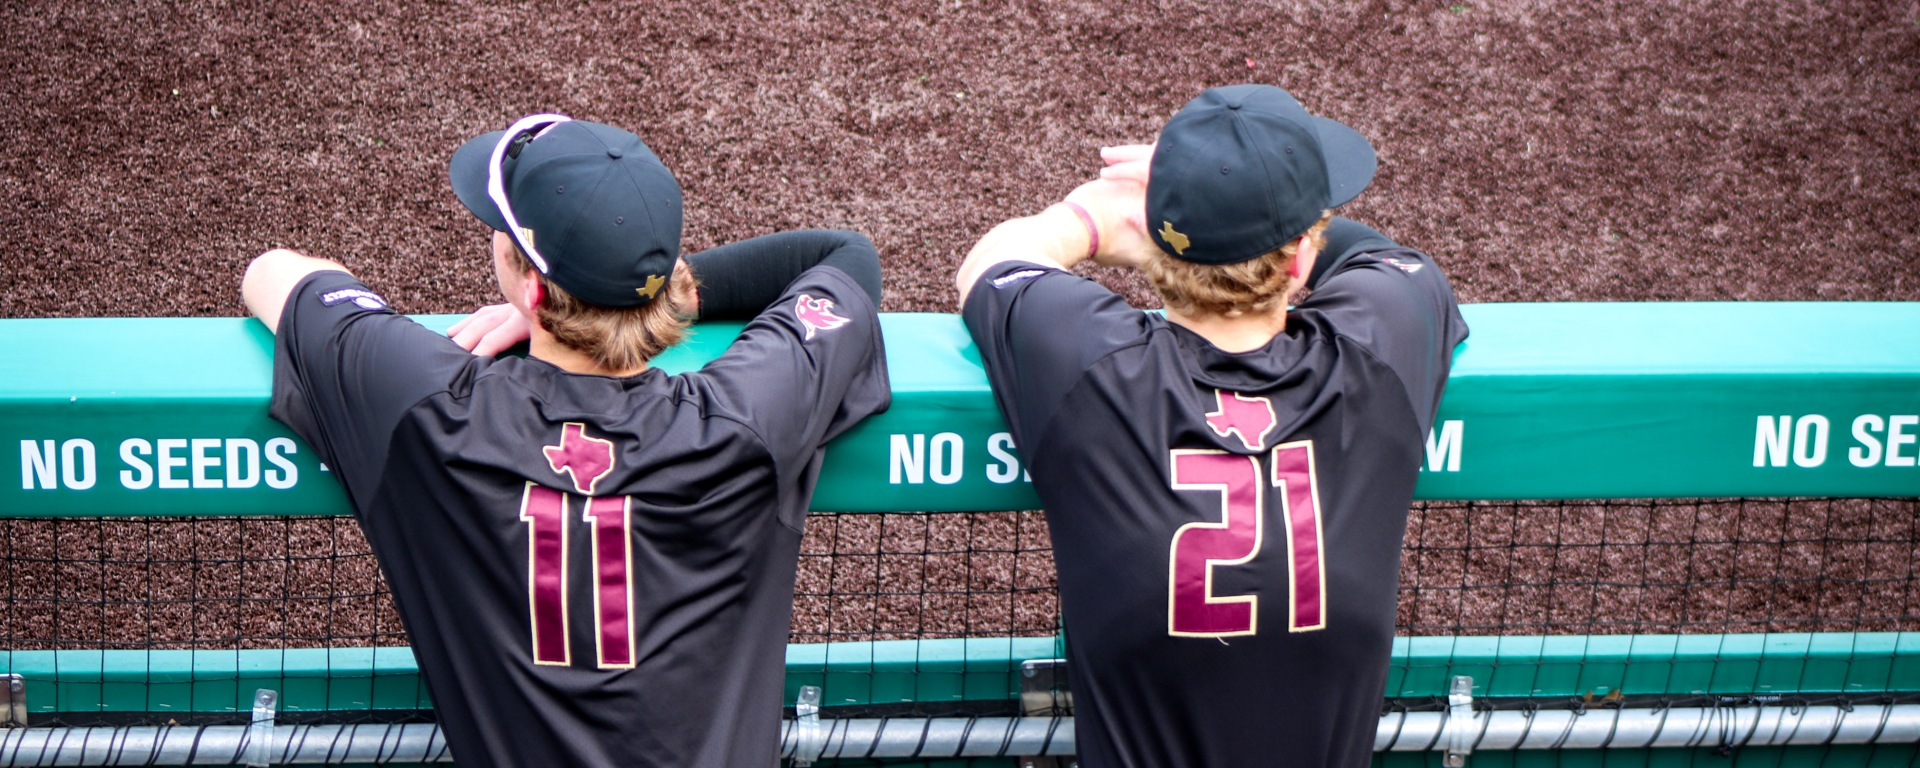 Texas State baseball players in black uniforms lean against the railing of the dugout in Bobcat Ballpark.